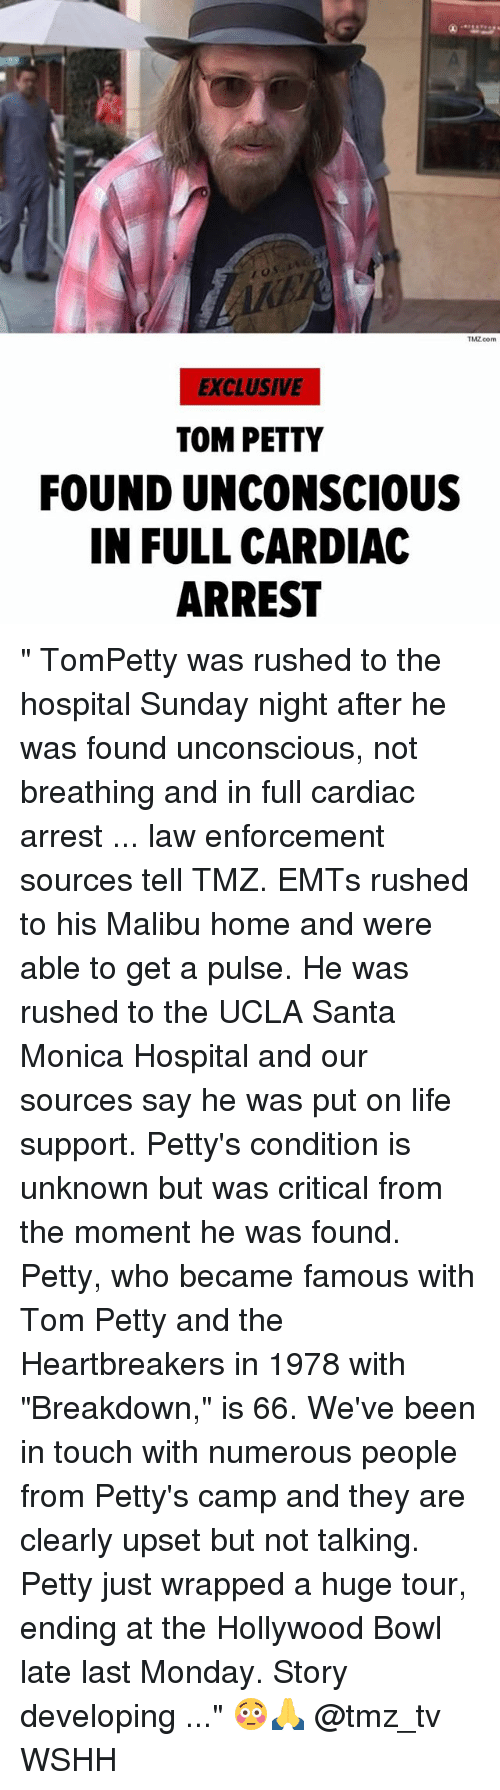 "Life, Memes, and Petty: TMZ com  EXCLUSIVE  TOM PETTY  FOUND UNCONSCIOUS  IN FULL CARDIAC  ARREST "" TomPetty was rushed to the hospital Sunday night after he was found unconscious, not breathing and in full cardiac arrest ... law enforcement sources tell TMZ. EMTs rushed to his Malibu home and were able to get a pulse. He was rushed to the UCLA Santa Monica Hospital and our sources say he was put on life support. Petty's condition is unknown but was critical from the moment he was found. Petty, who became famous with Tom Petty and the Heartbreakers in 1978 with ""Breakdown,"" is 66. We've been in touch with numerous people from Petty's camp and they are clearly upset but not talking. Petty just wrapped a huge tour, ending at the Hollywood Bowl late last Monday. Story developing ..."" 😳🙏 @tmz_tv WSHH"